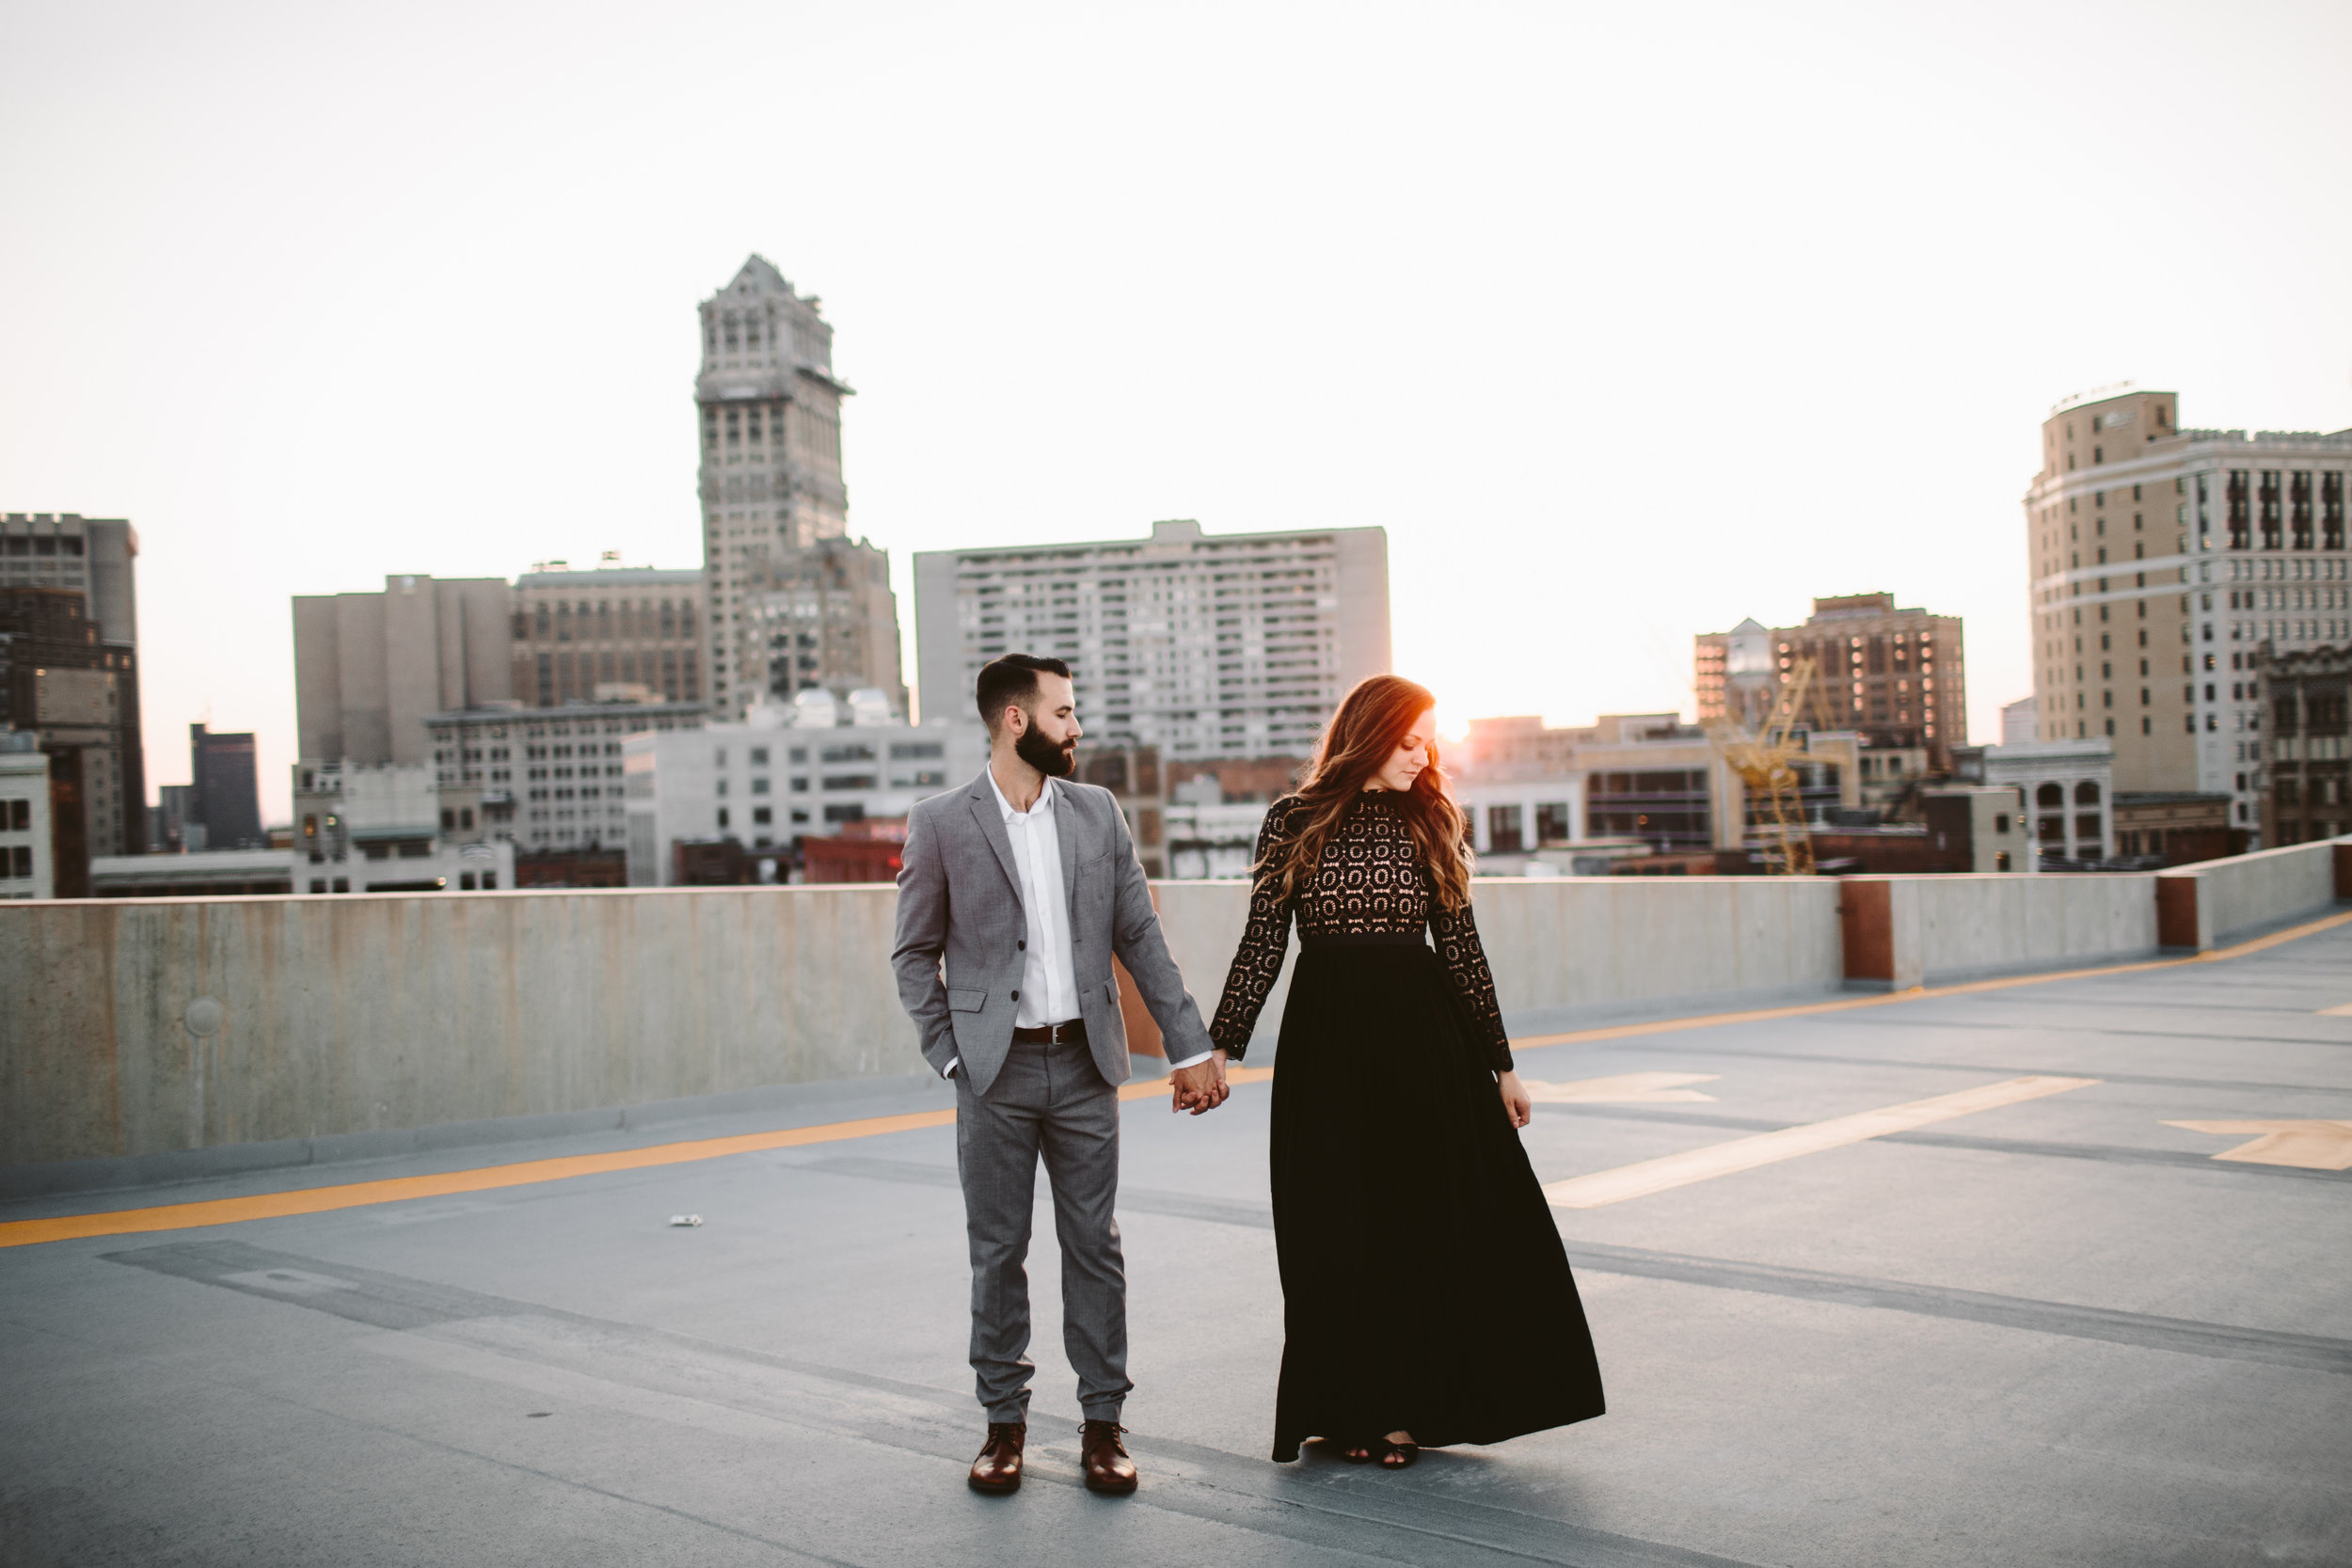 engagement session at sunset on detroit parking garage rooftop